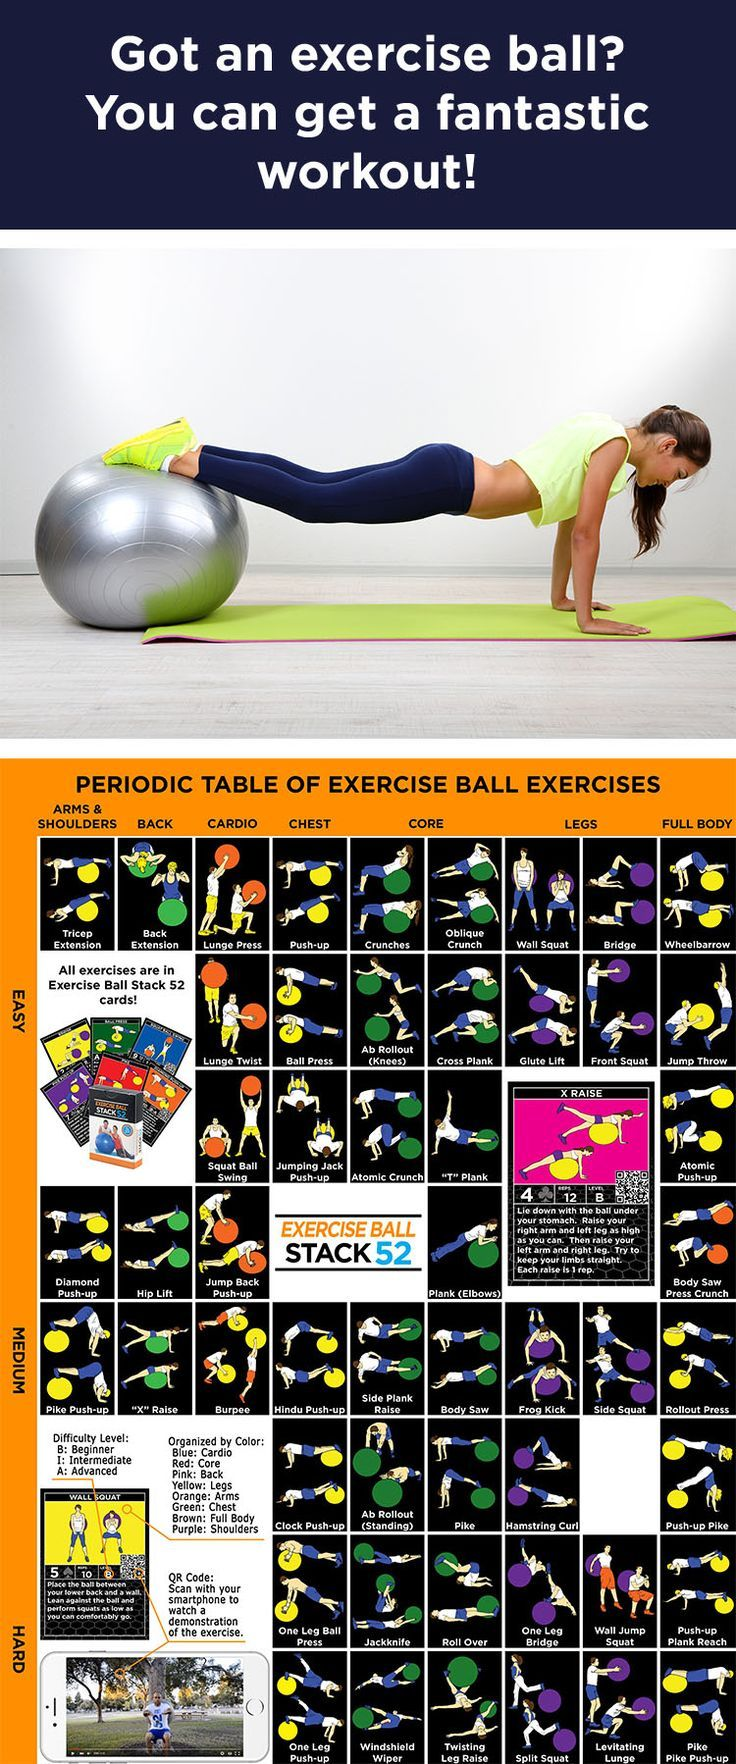 Cards on the table mathistopheles - Periodic Table Of Exercise Ball Exercises